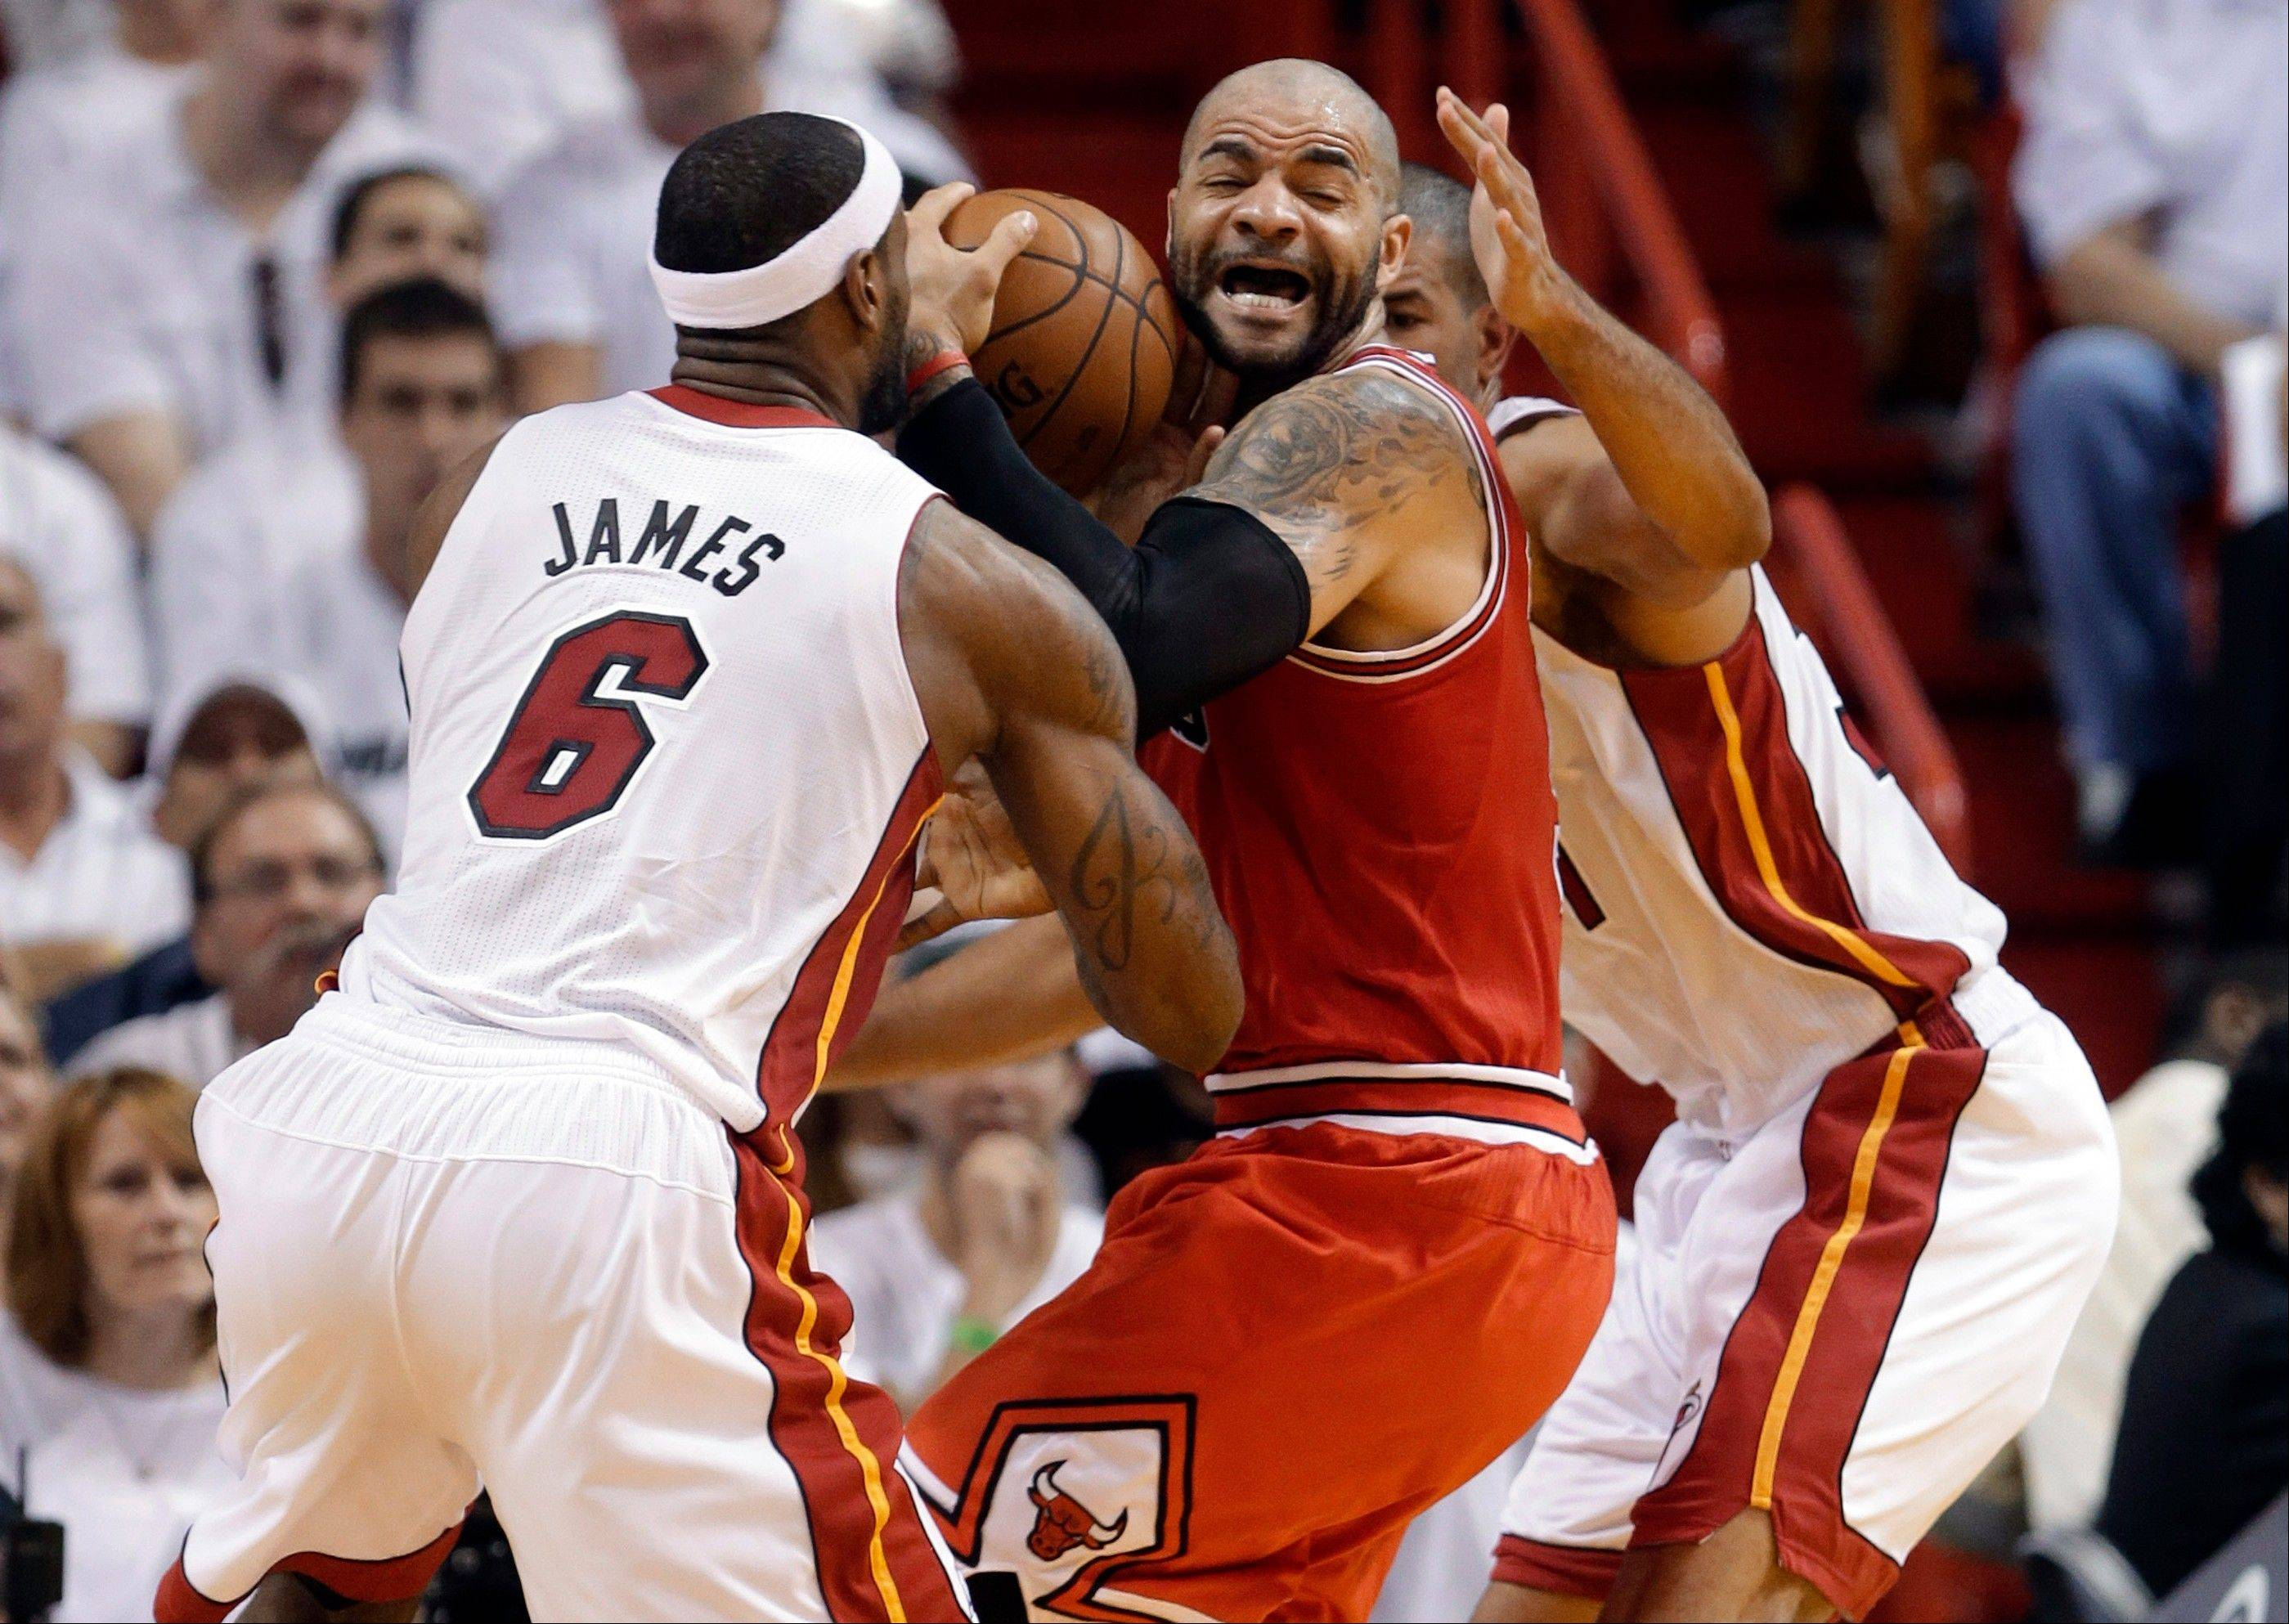 Carlos Boozer works the ball between LeBron James and Shane Battier, right, as he attempts to shoot during the first half of the Bulls' Game 5 loss to Miami in the Eastern Conference semifinals.